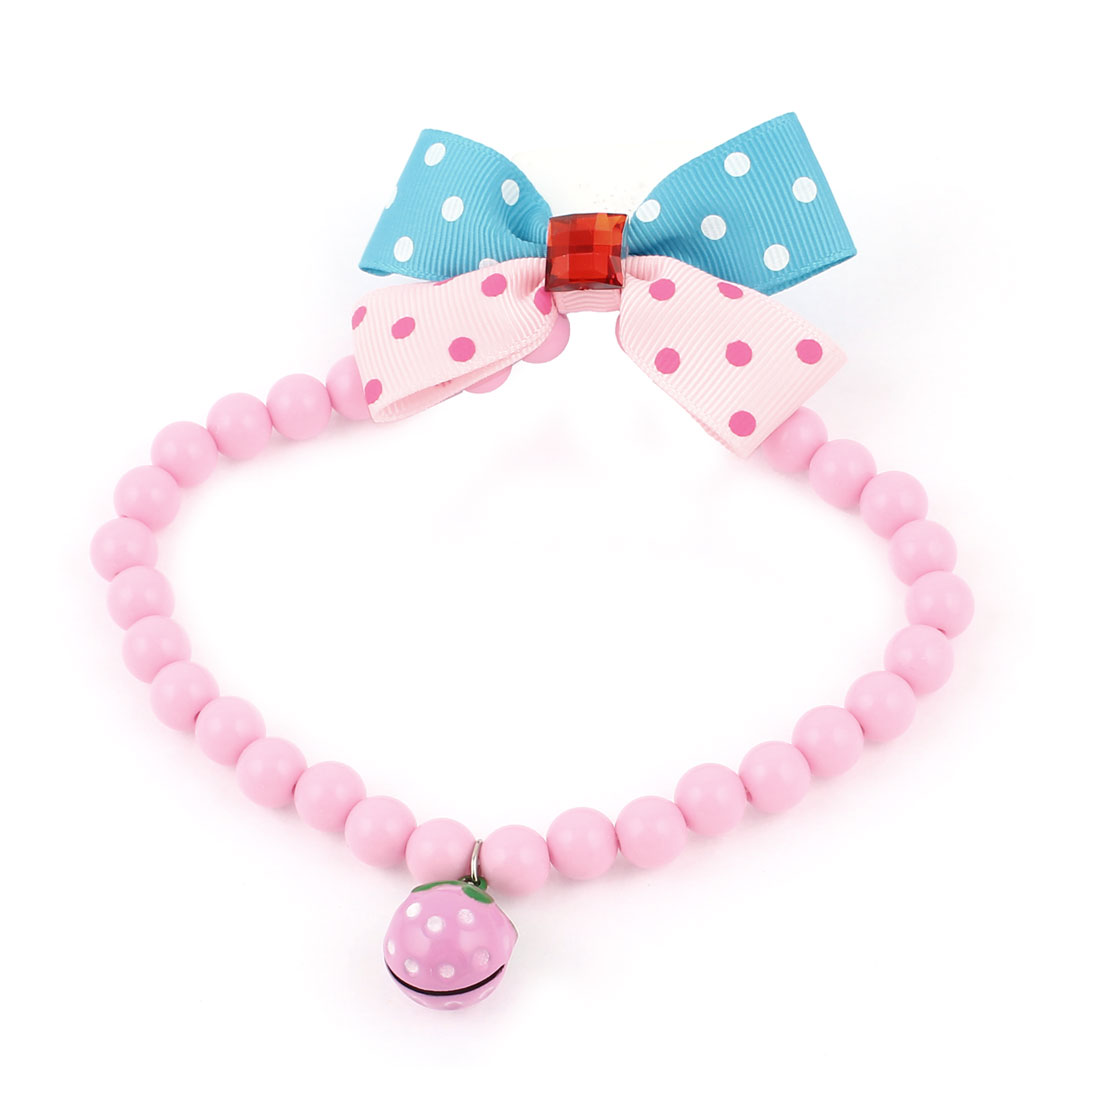 Metal Bell Pendant Bowtie Accent Pet Dog Plastic Beads Collar Necklace Pink Blue M